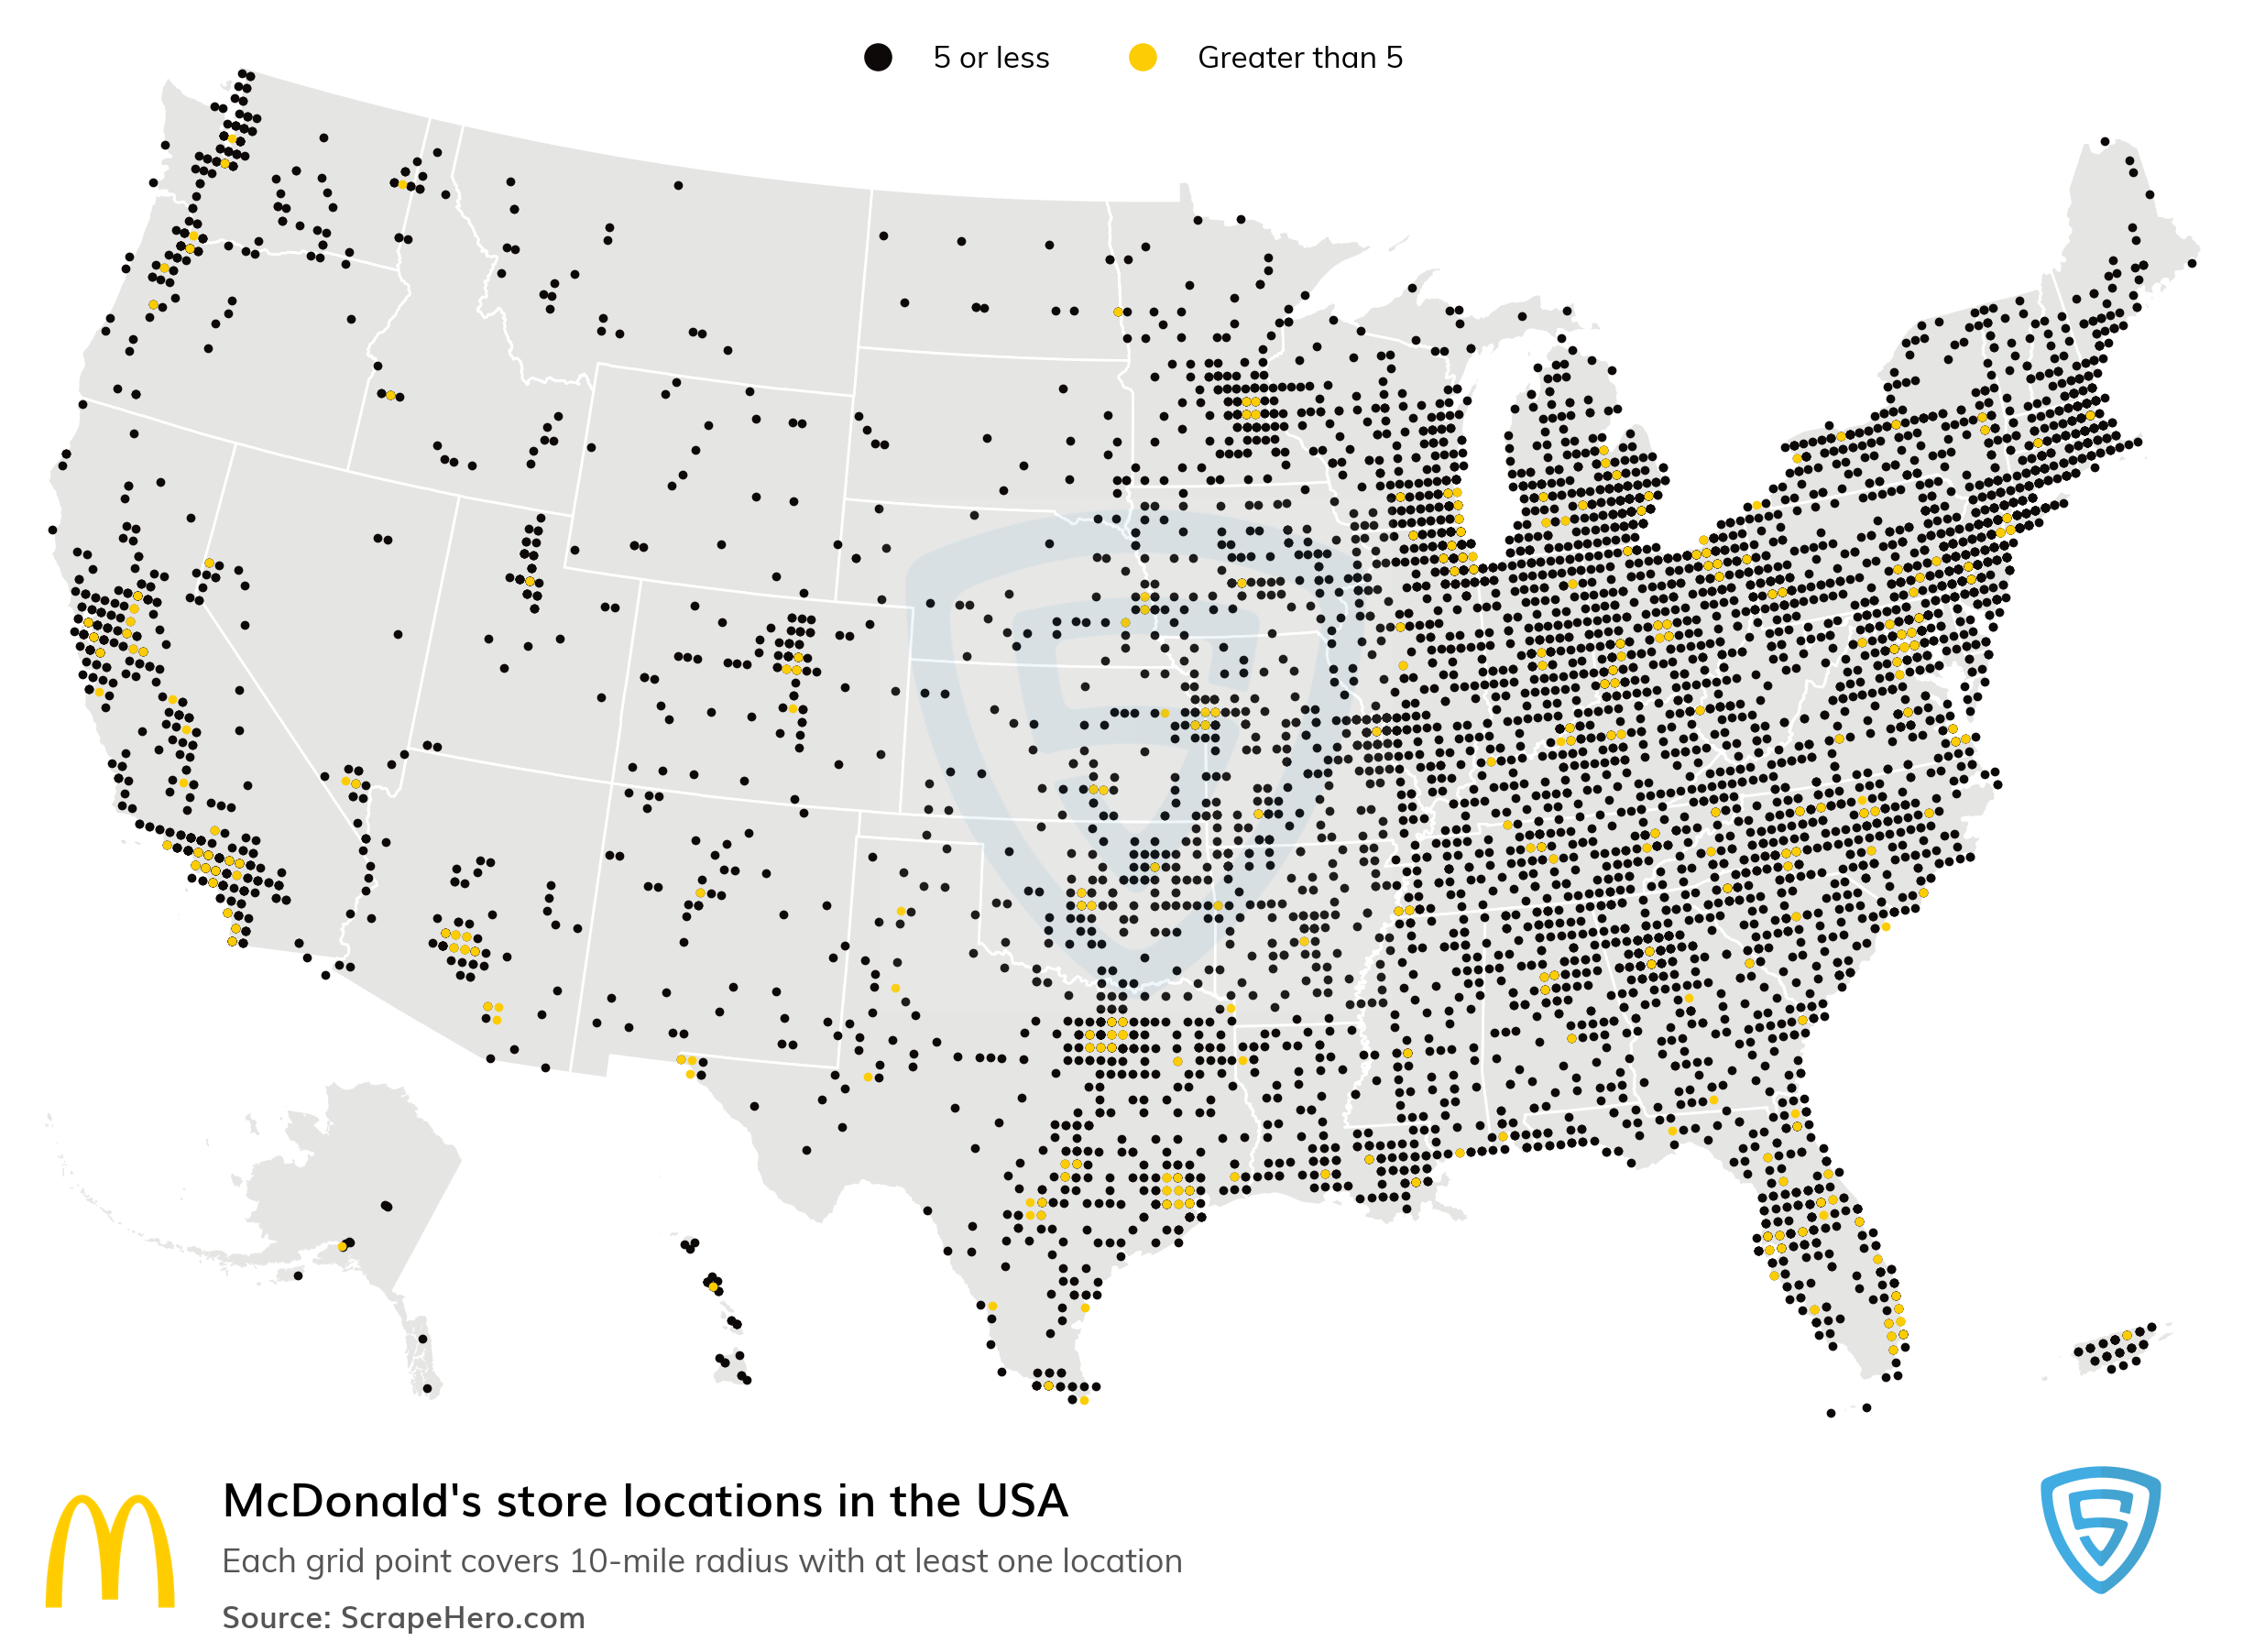 Large Map of McDonald's locations in the USA